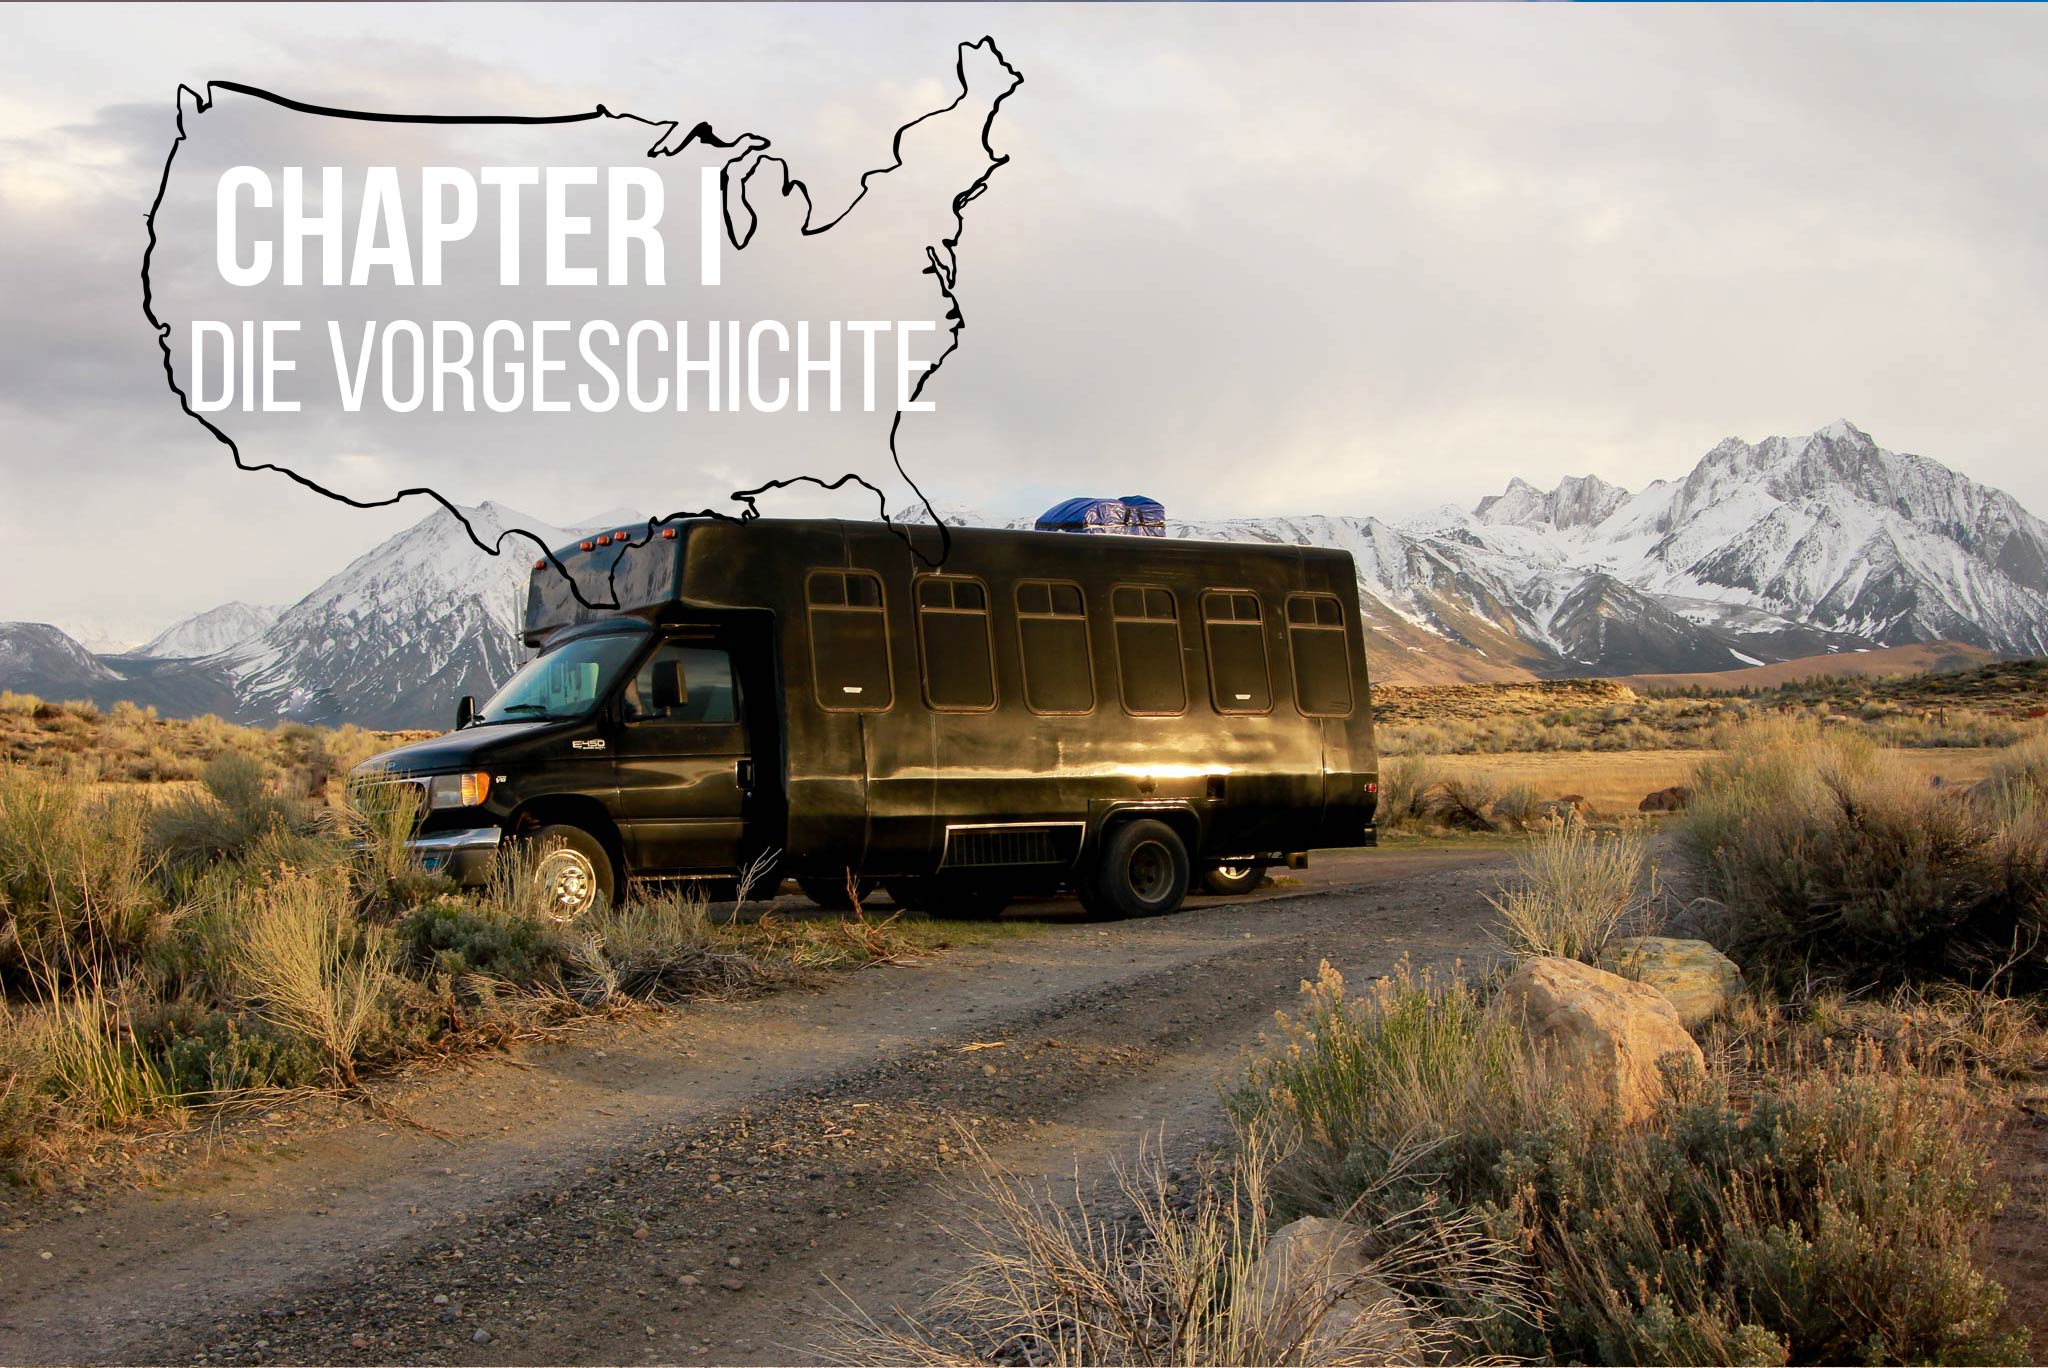 From Coast to Coast - On the Road to Mt. Hood: Chapter I - Die Vorgeschichte